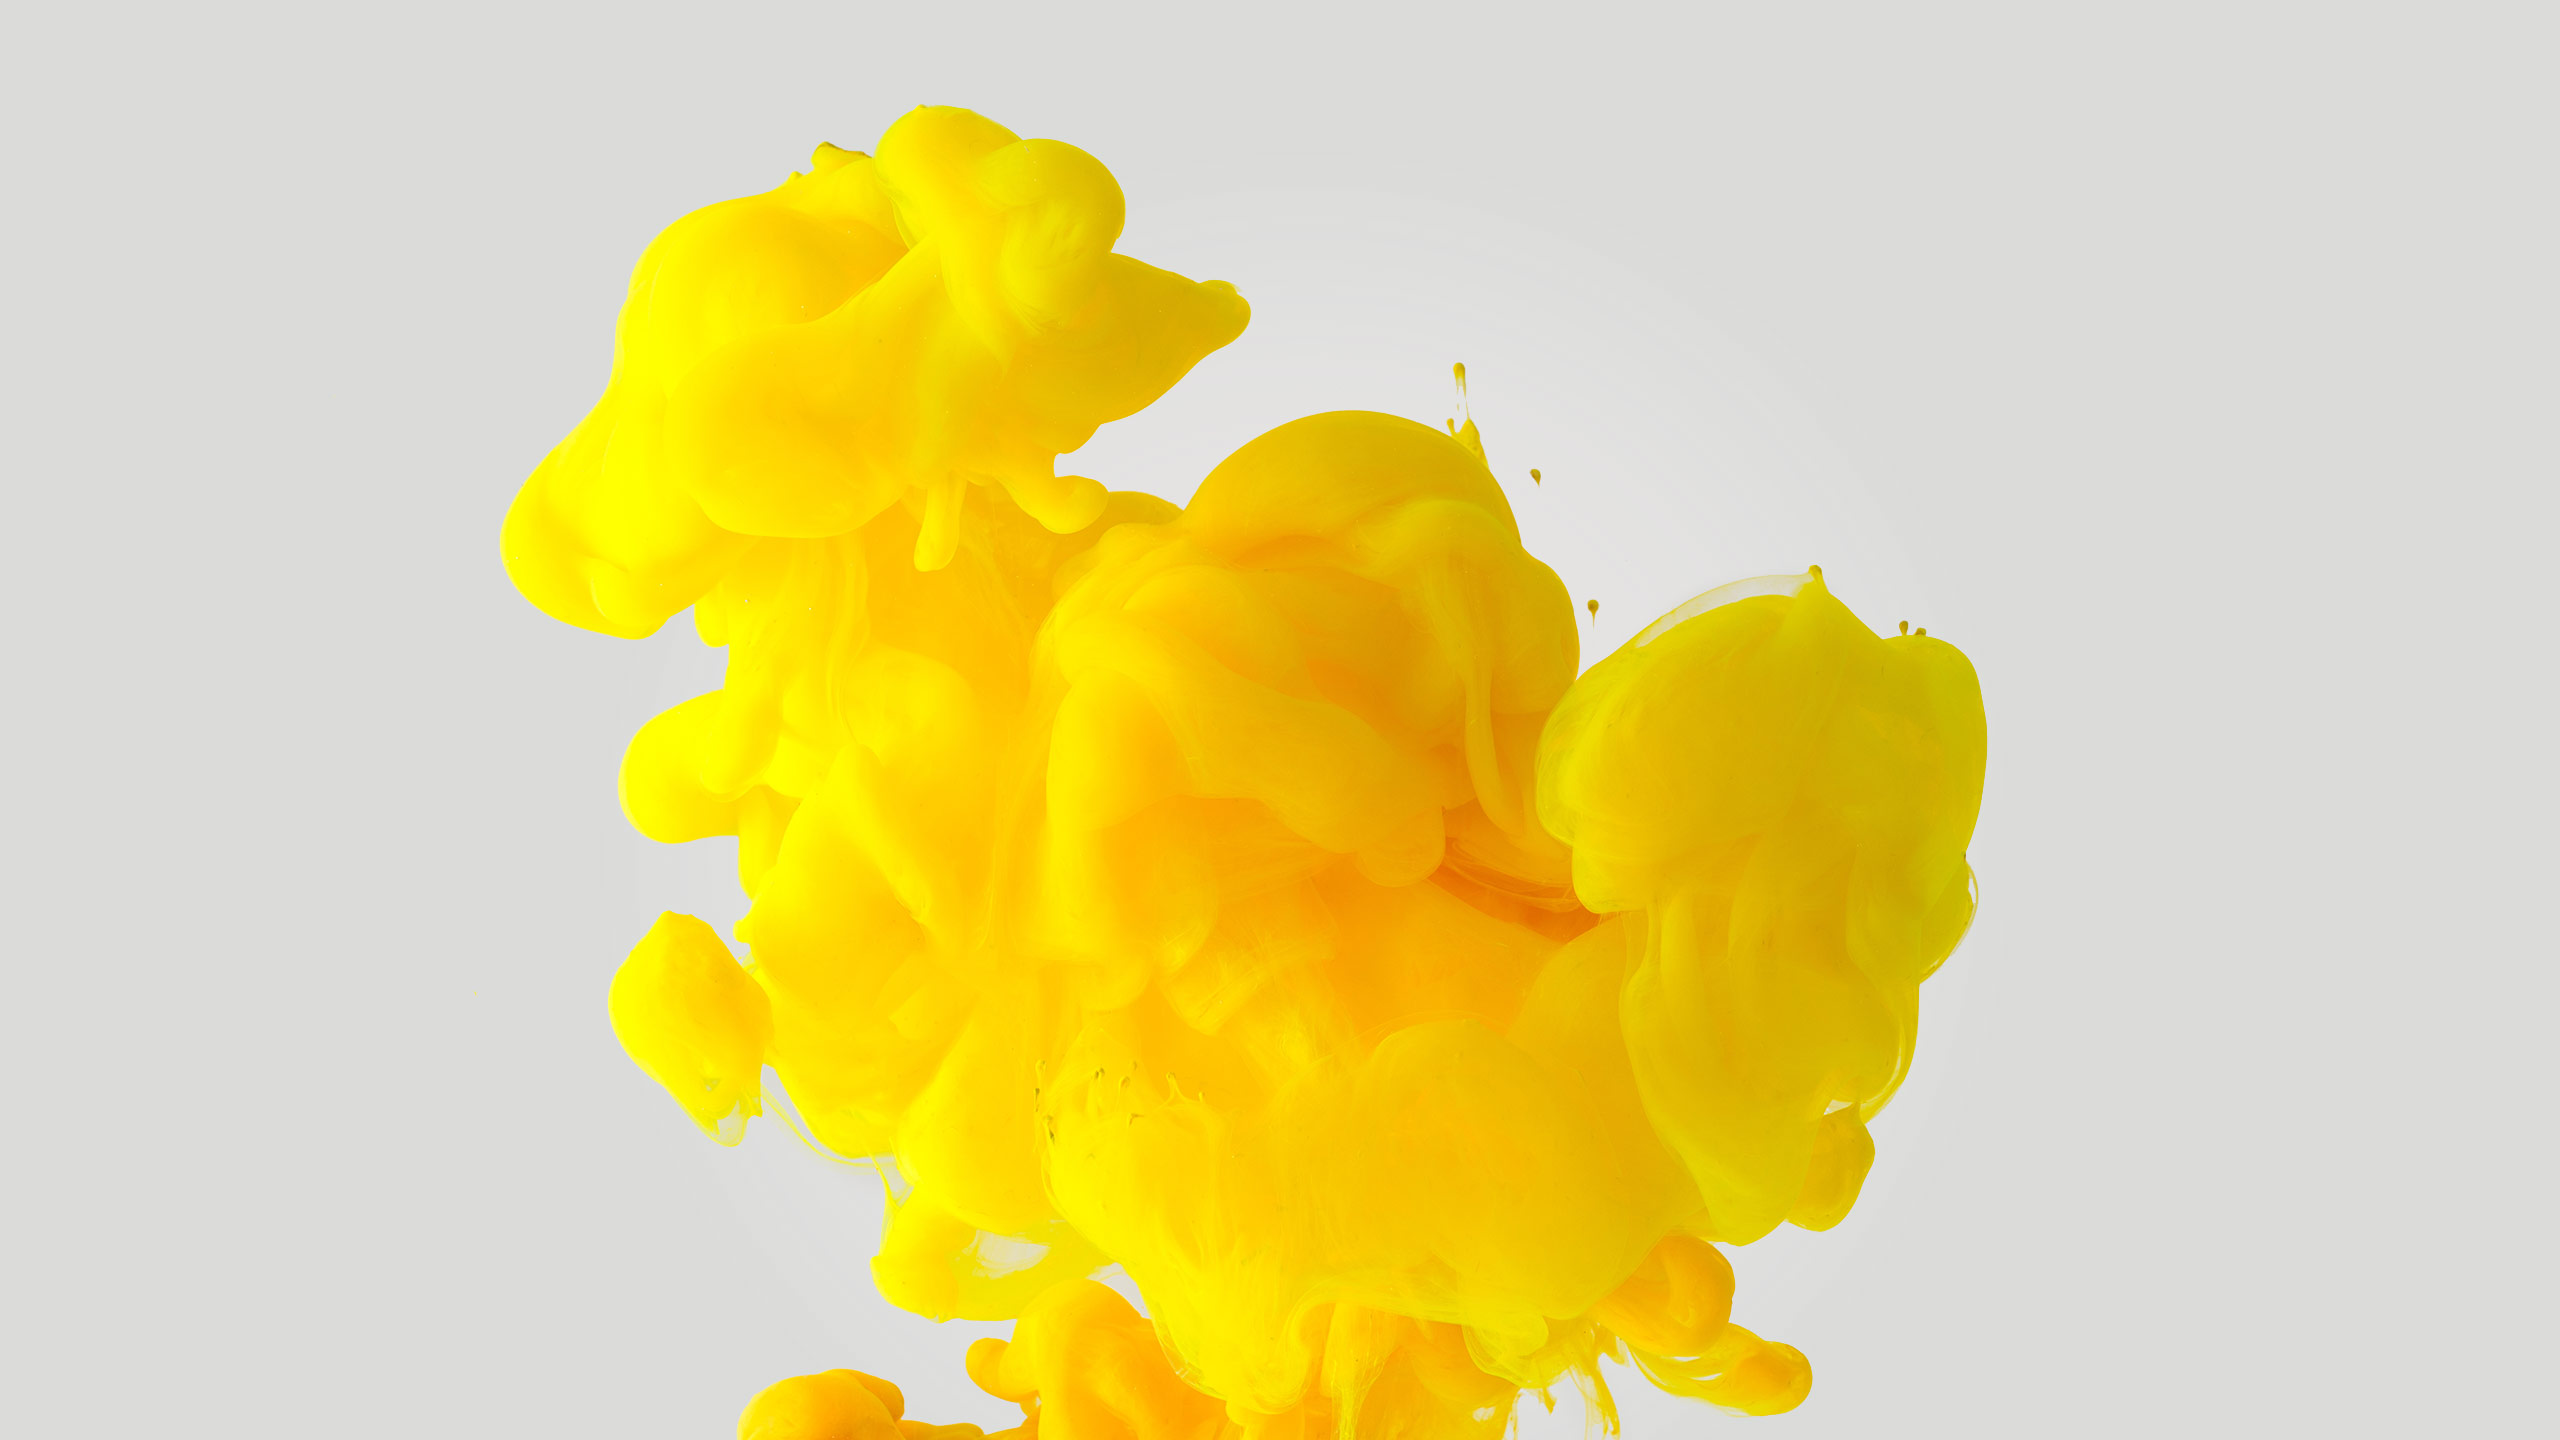 Cloud of bright yellow ink floating on a white background | Graphic Design Brisbane